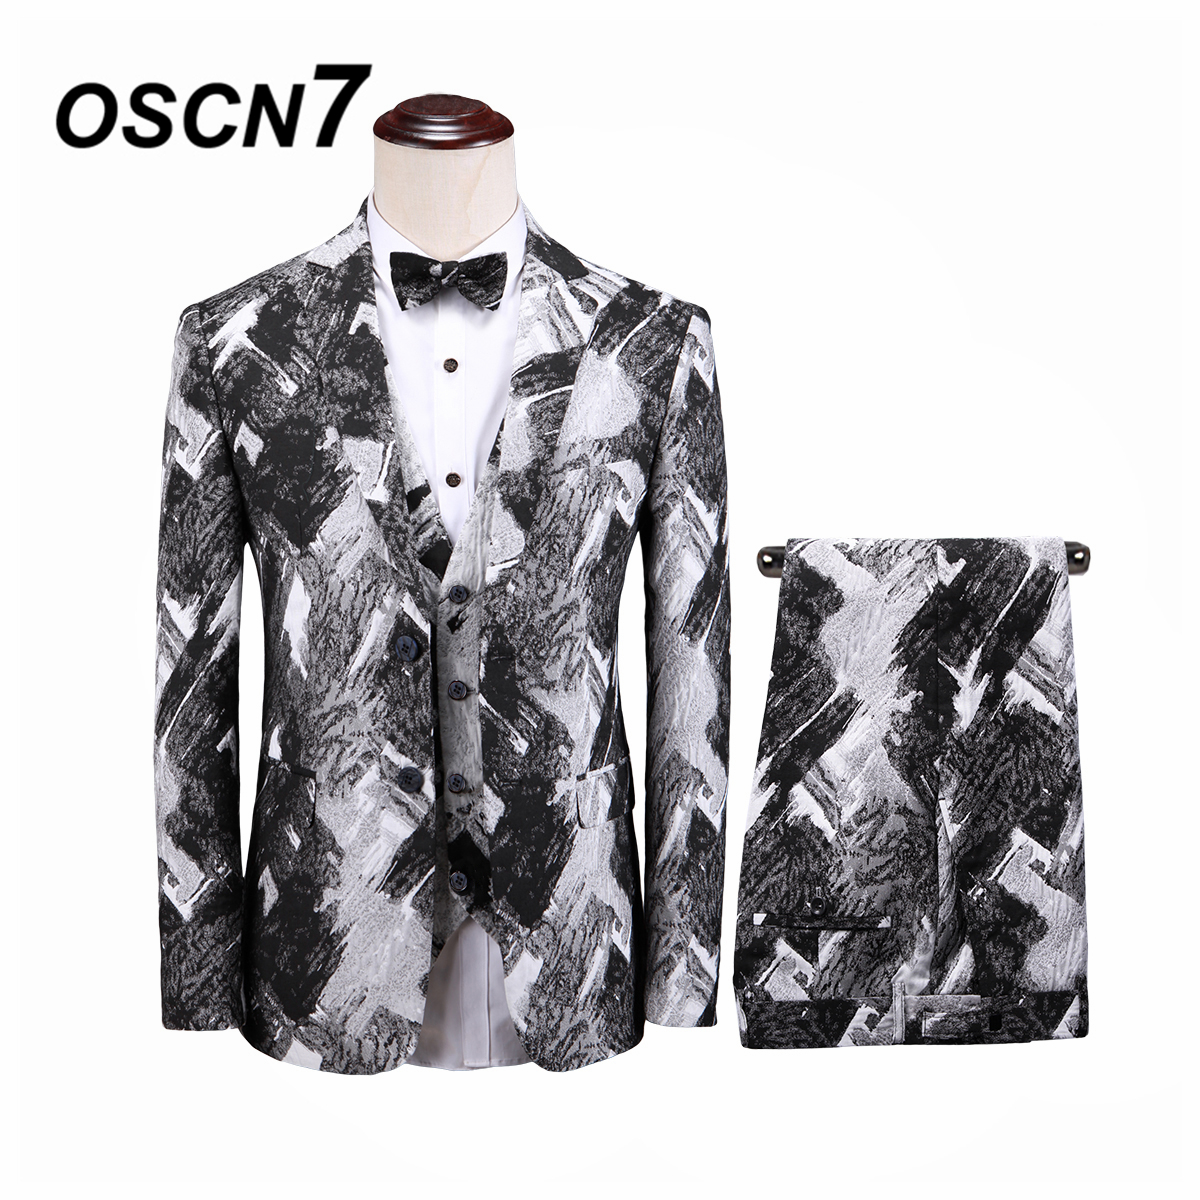 Apprehensive Oscn7 Leisure Slim Fit Grey Print 3 Piece Suits Men 2019 Groom Wedding Suits For Men Fashion Party Three Piece Suit Men T301 Cheapest Price From Our Site